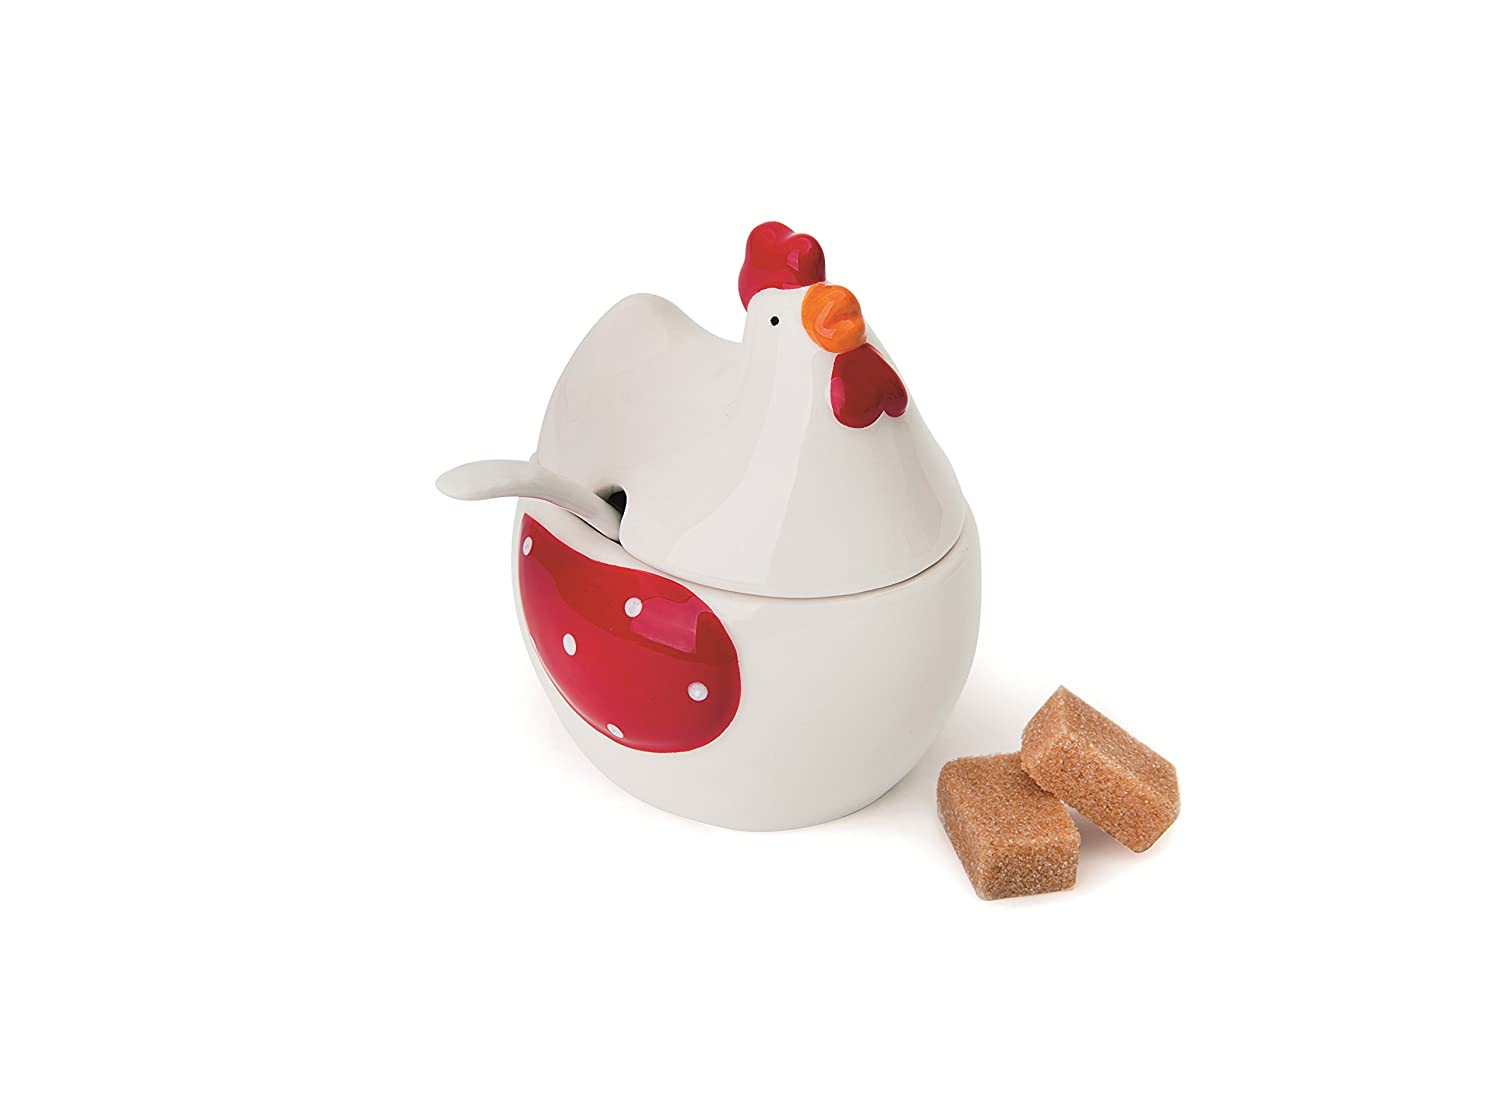 Excelsa Chicken Sugar Bowl with Spoon, Ceramic, White, Red and Yellow Bergamaschi & Vimercati 48869